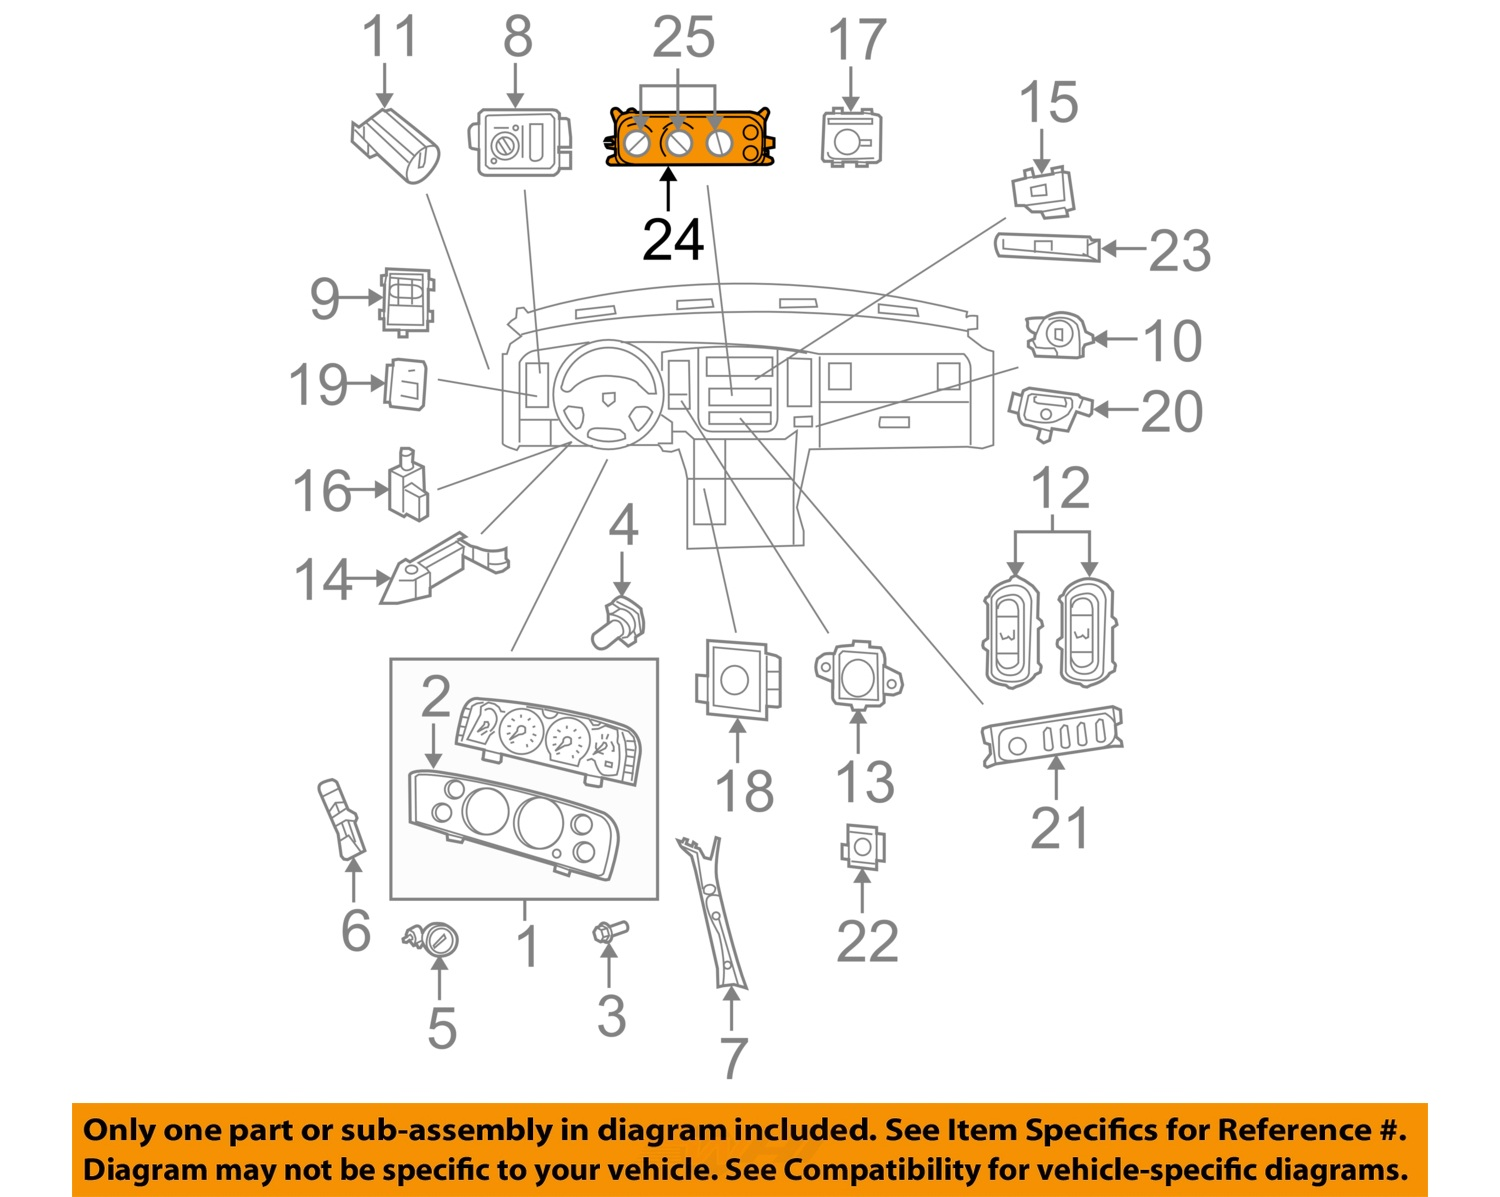 hight resolution of 2001 ram dash diagram trusted wiring diagrams 2004 dodge ram stereo wiring diagram 2003 dodge ram